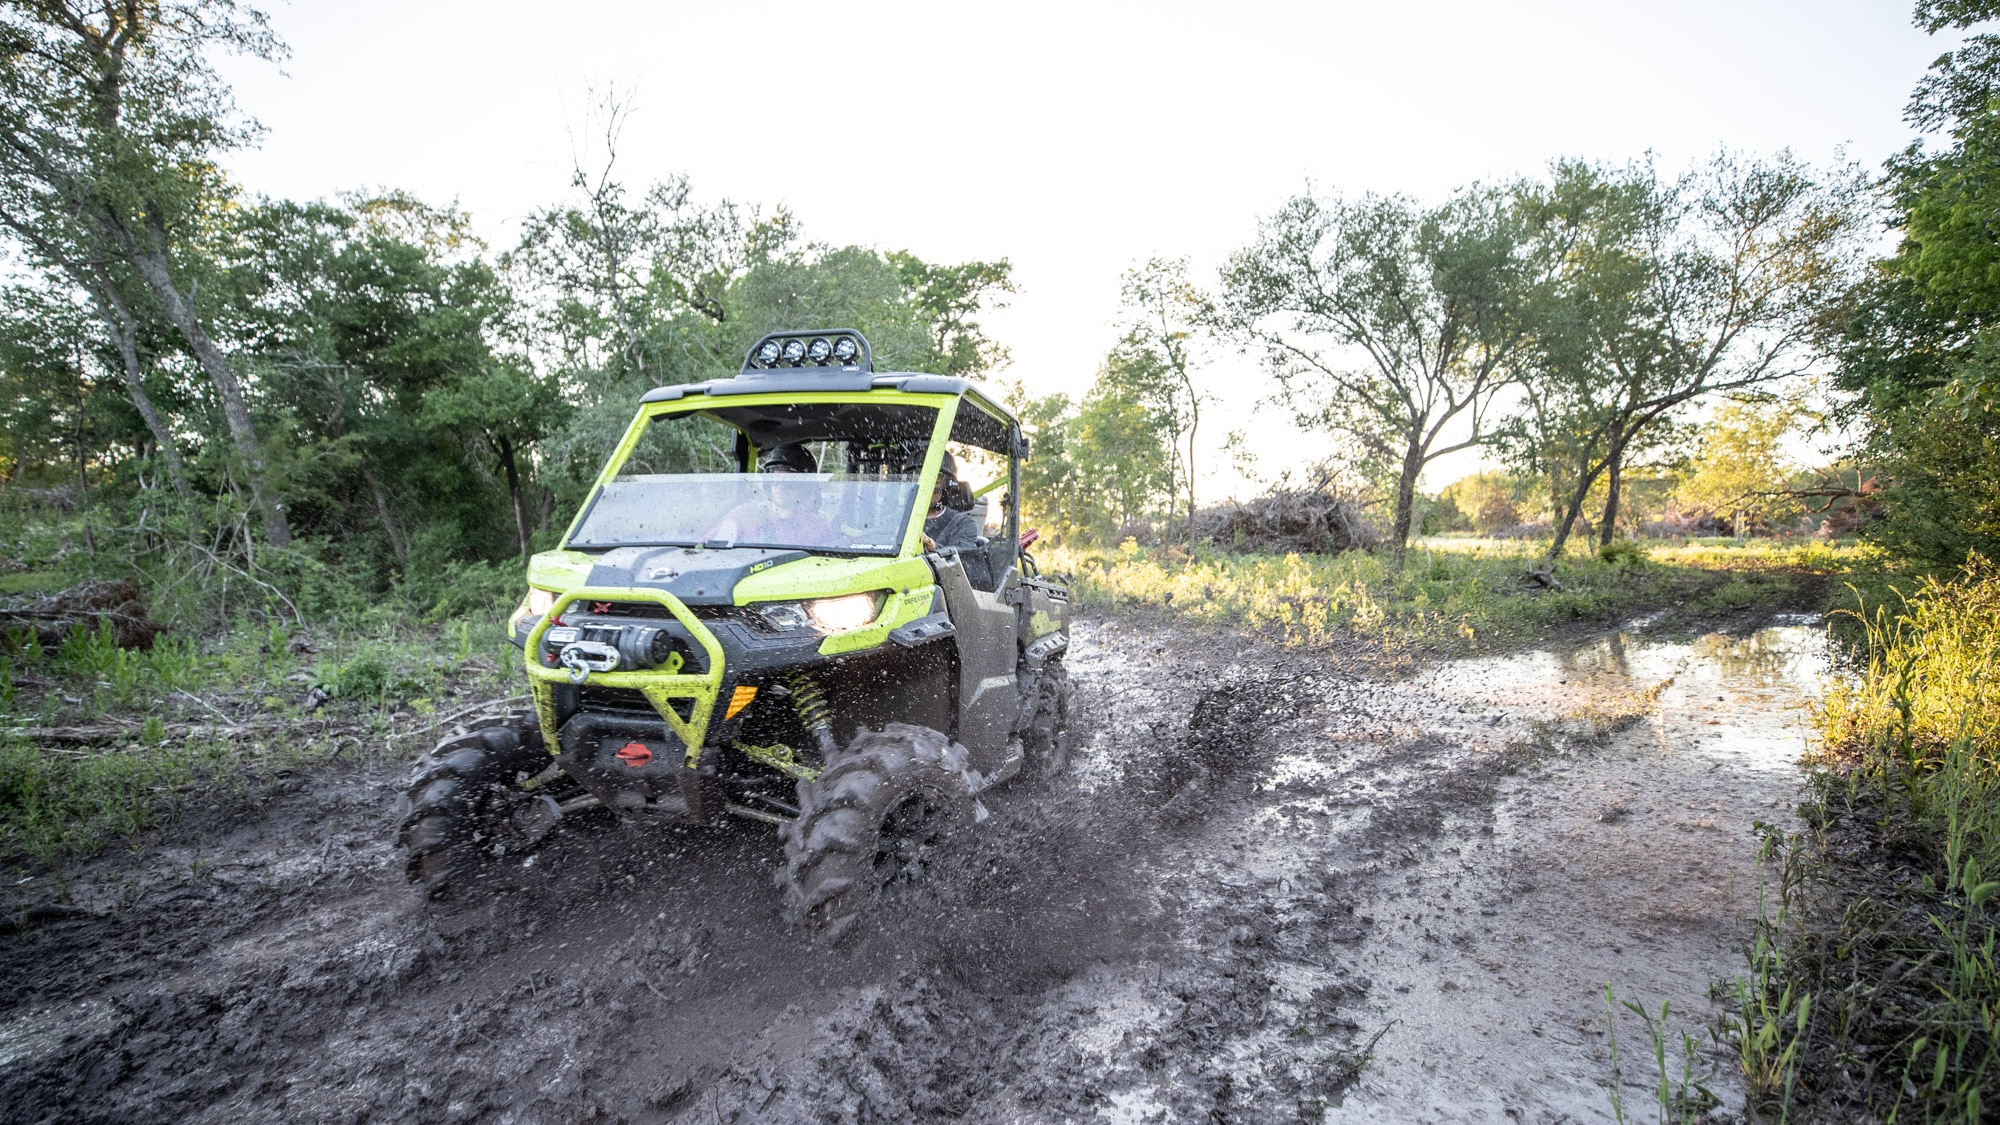 Men driving Traxter through mud